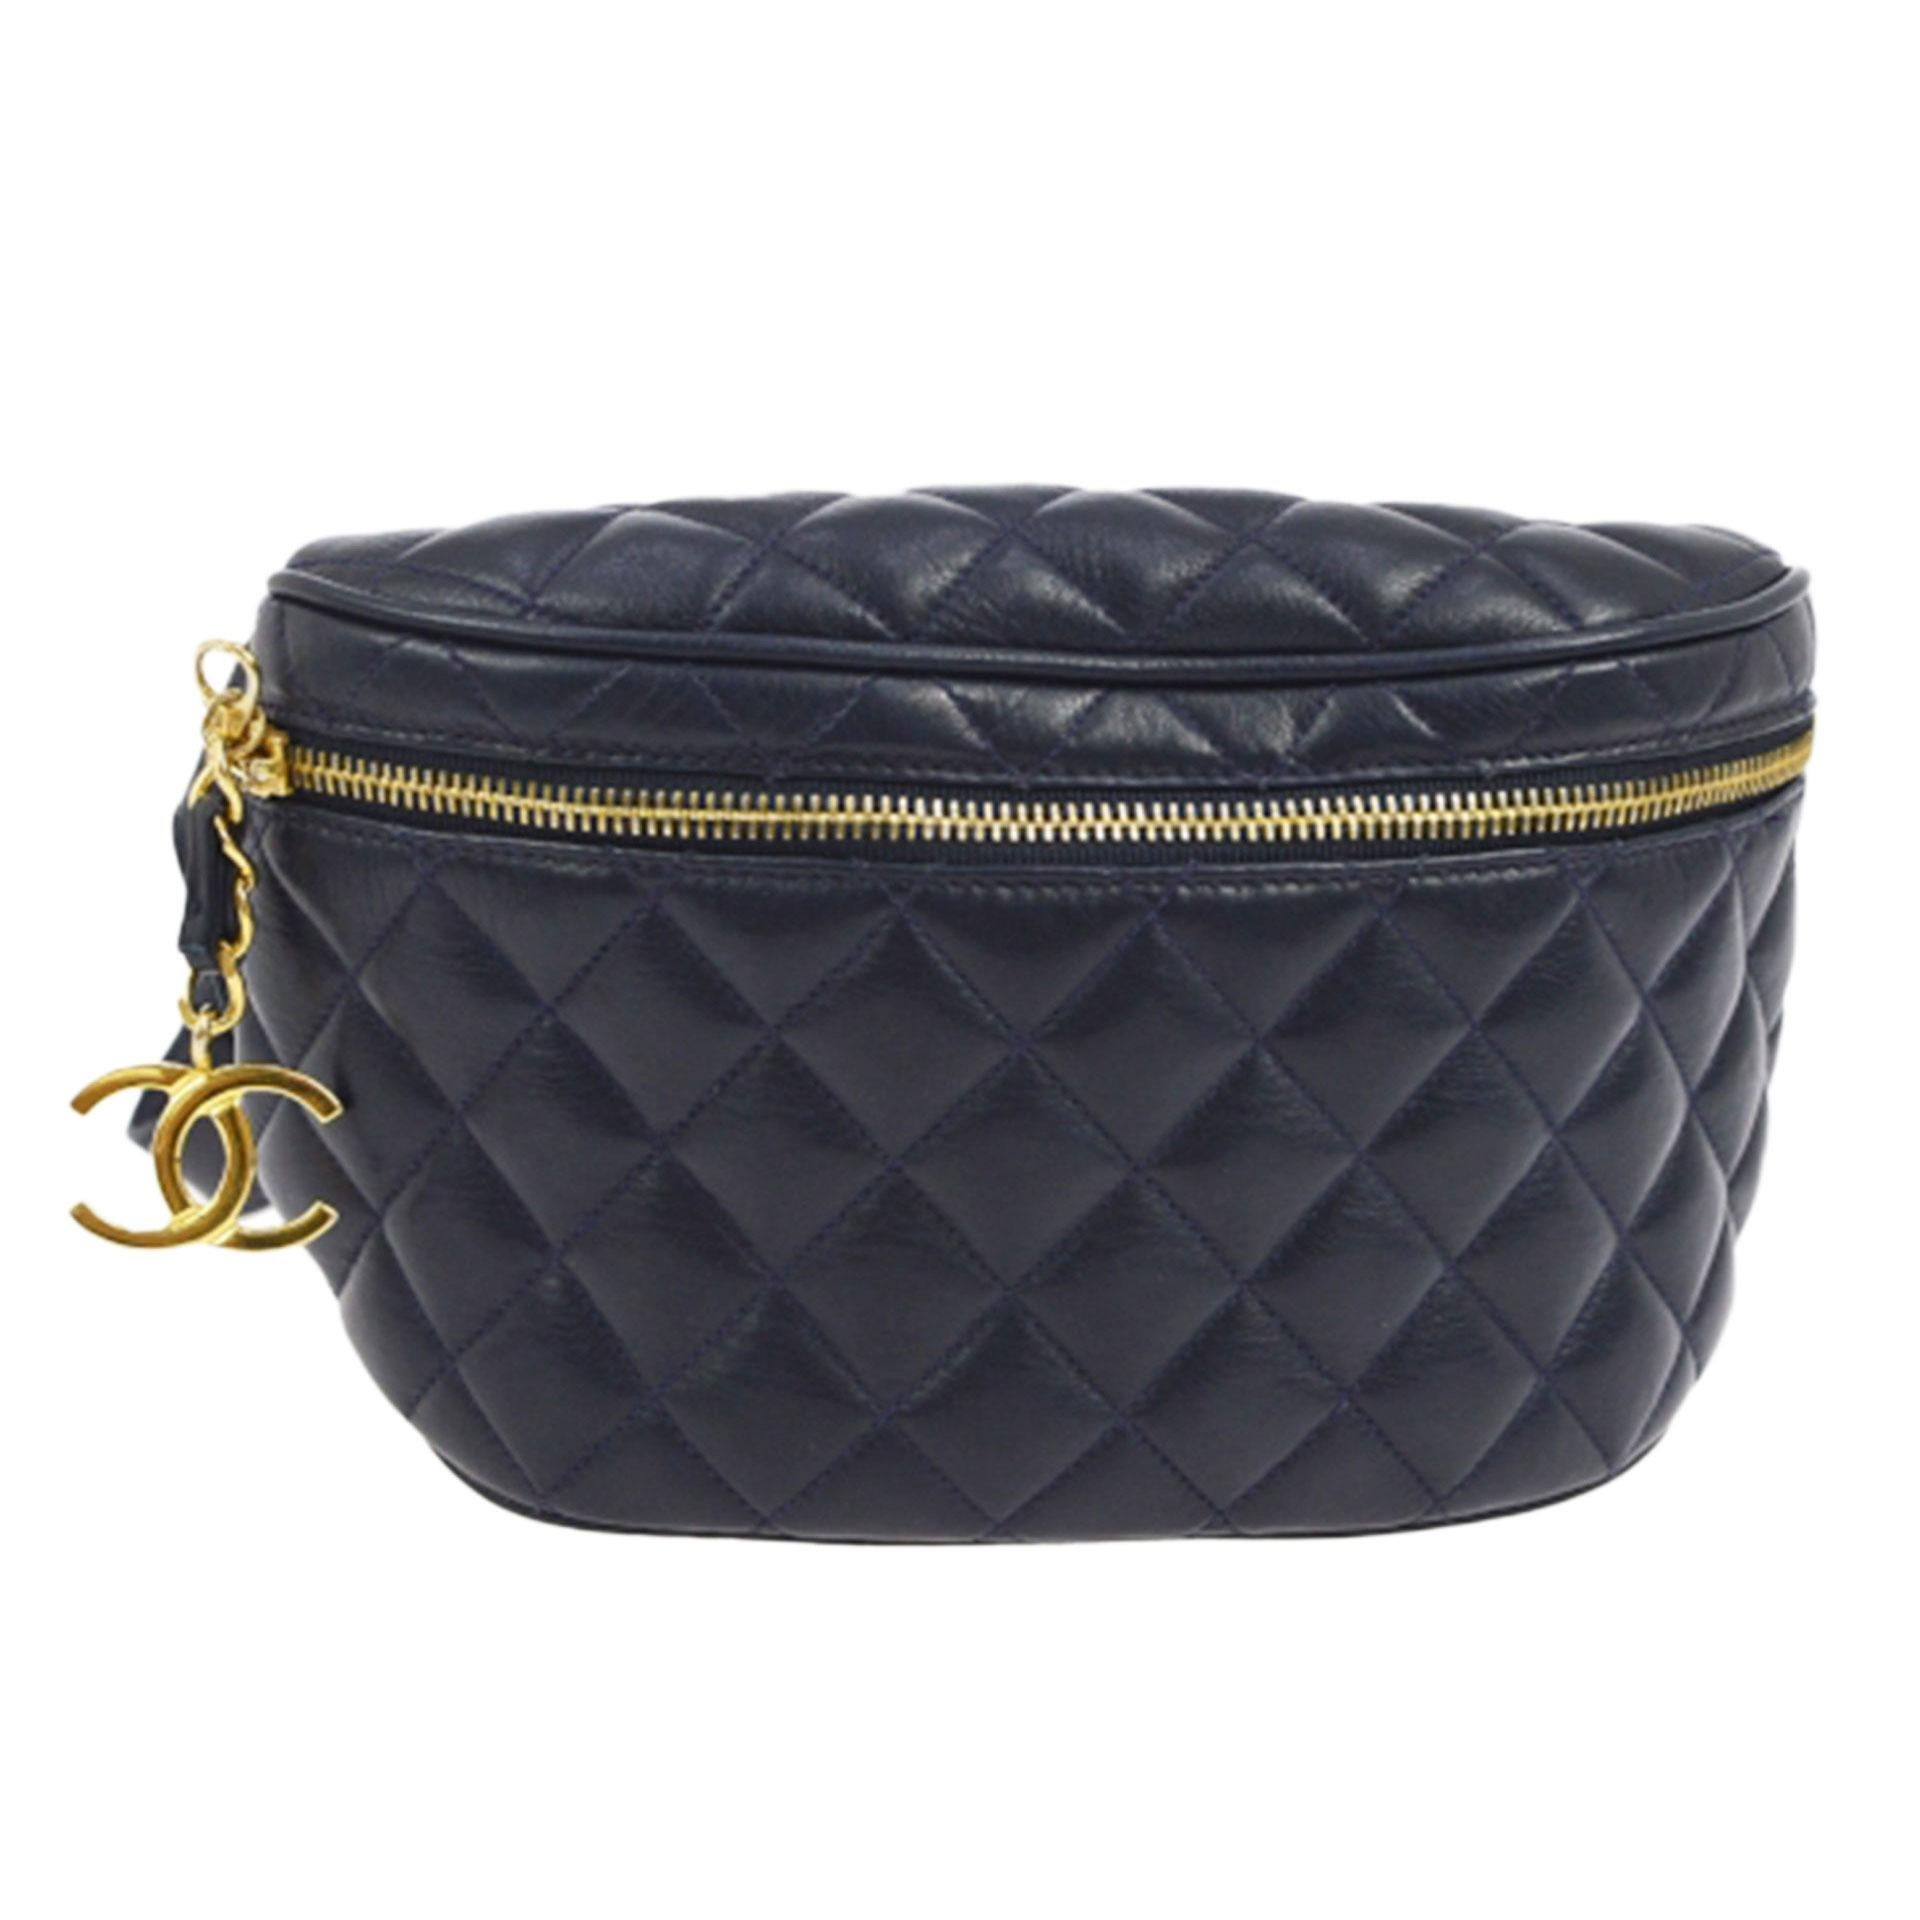 ae88e6c83246 Chanel Quilted Lambskin Vintage Fanny Pack Waist Belt Bum Bag, 1990s For  Sale at 1stdibs